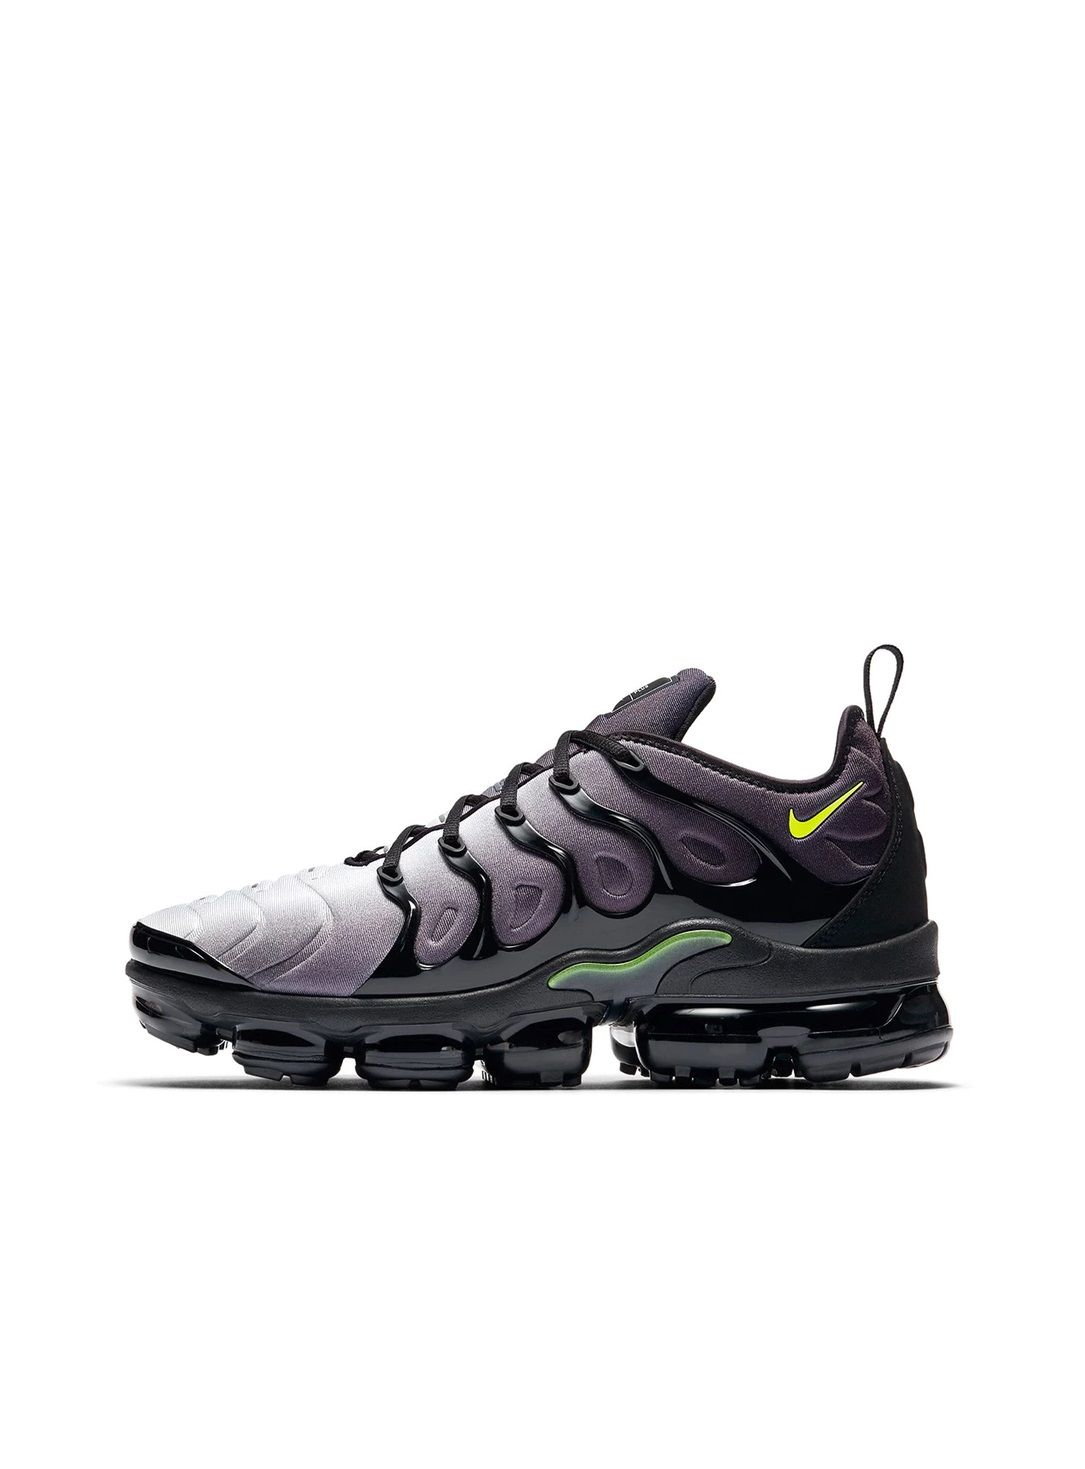 new style eb31c aaac4 Nike Air Vapormax Plus | one day in 2019 | Sneakers nike ...